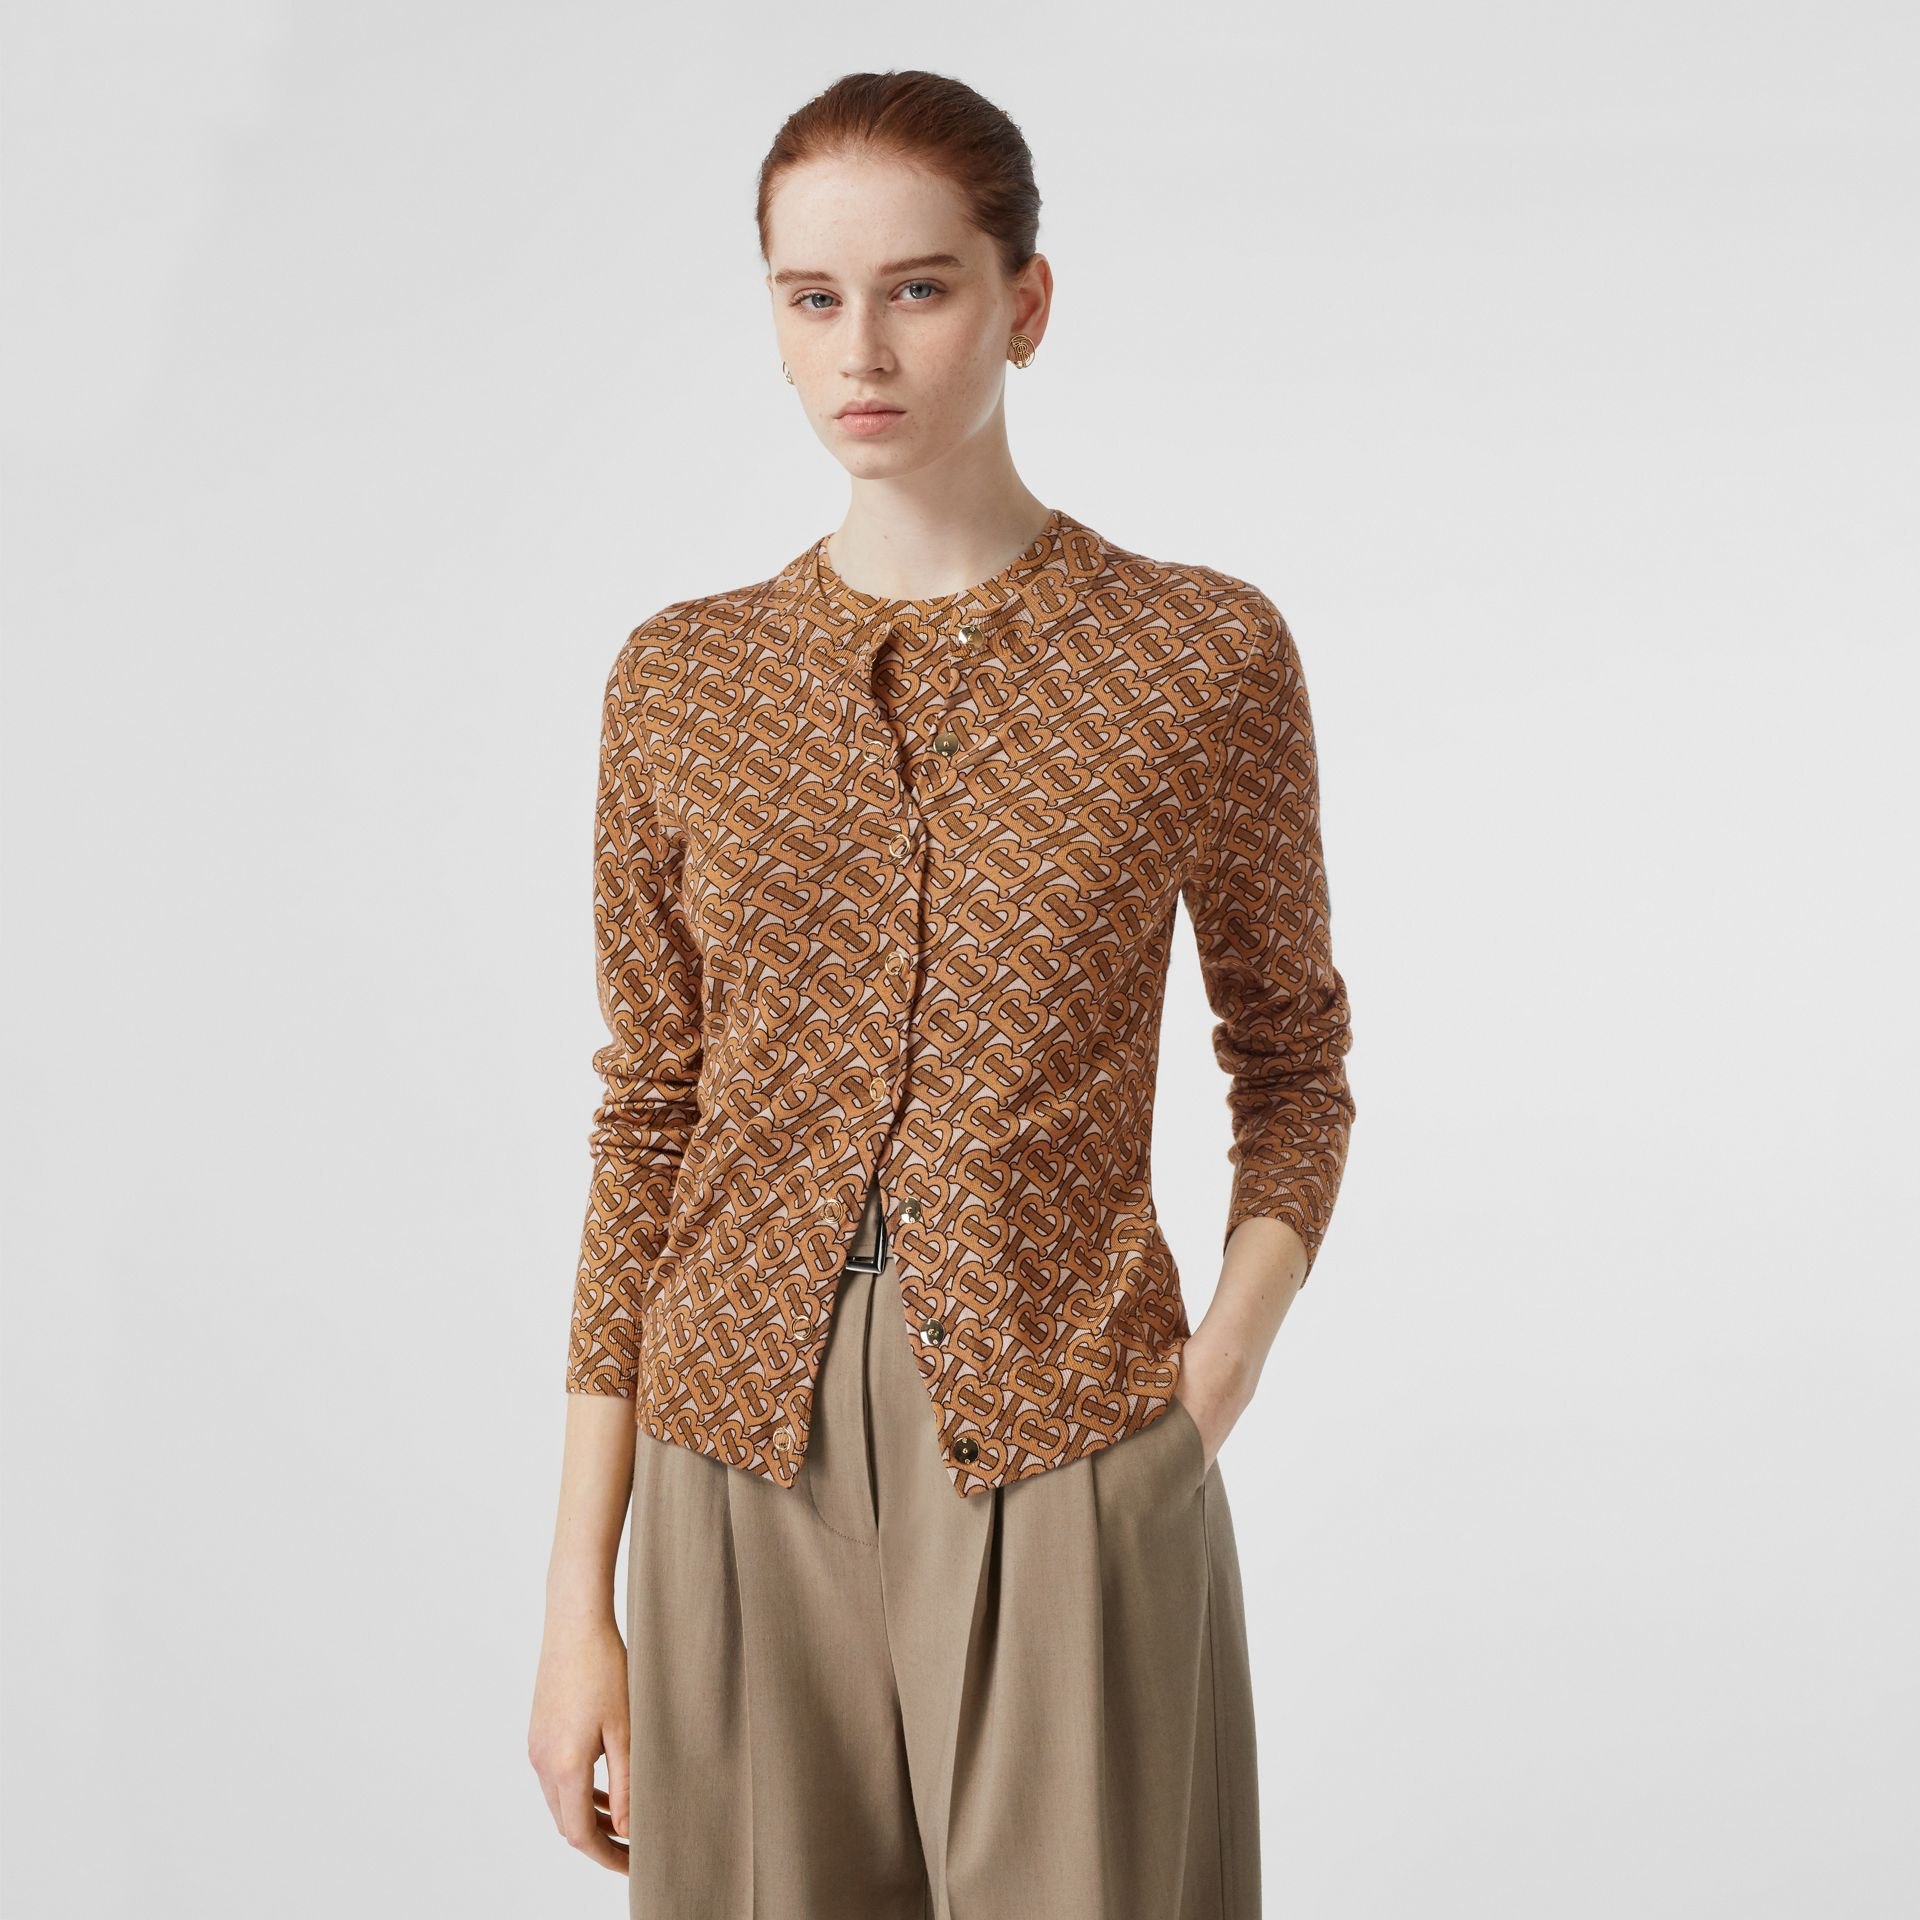 Monogram Print Merino Wool Cardigan in Beige - Women | Burberry - gallery image 4